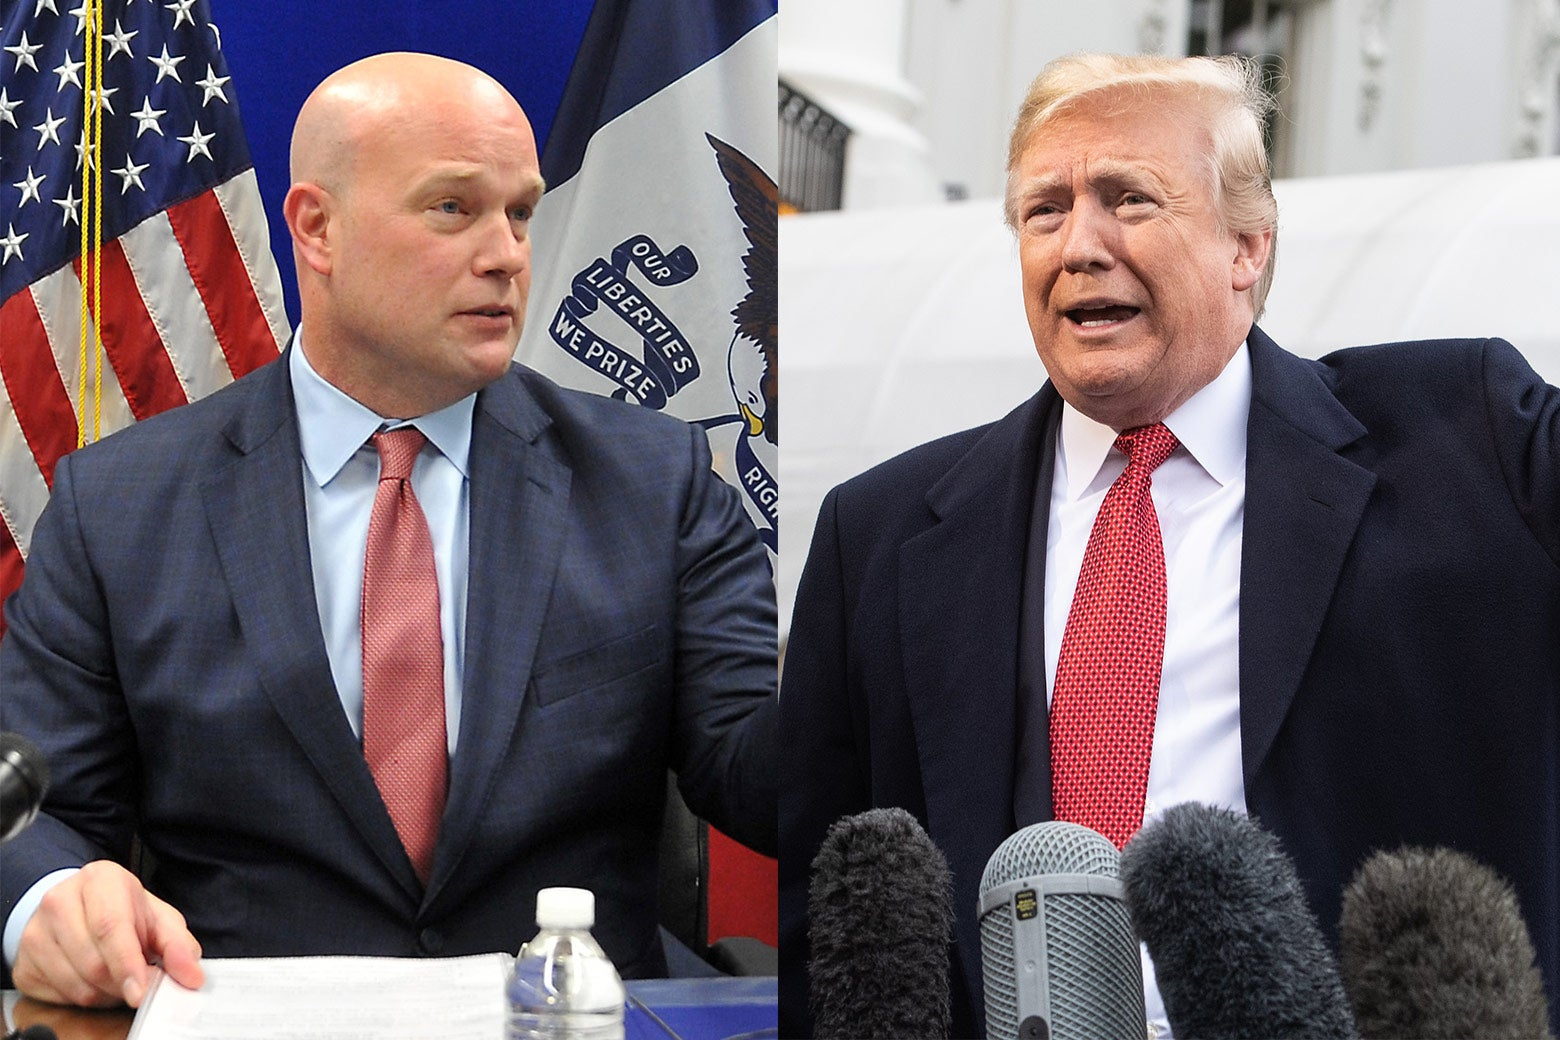 Side-by-side images of Matthew Whitaker and President Donald Trump.